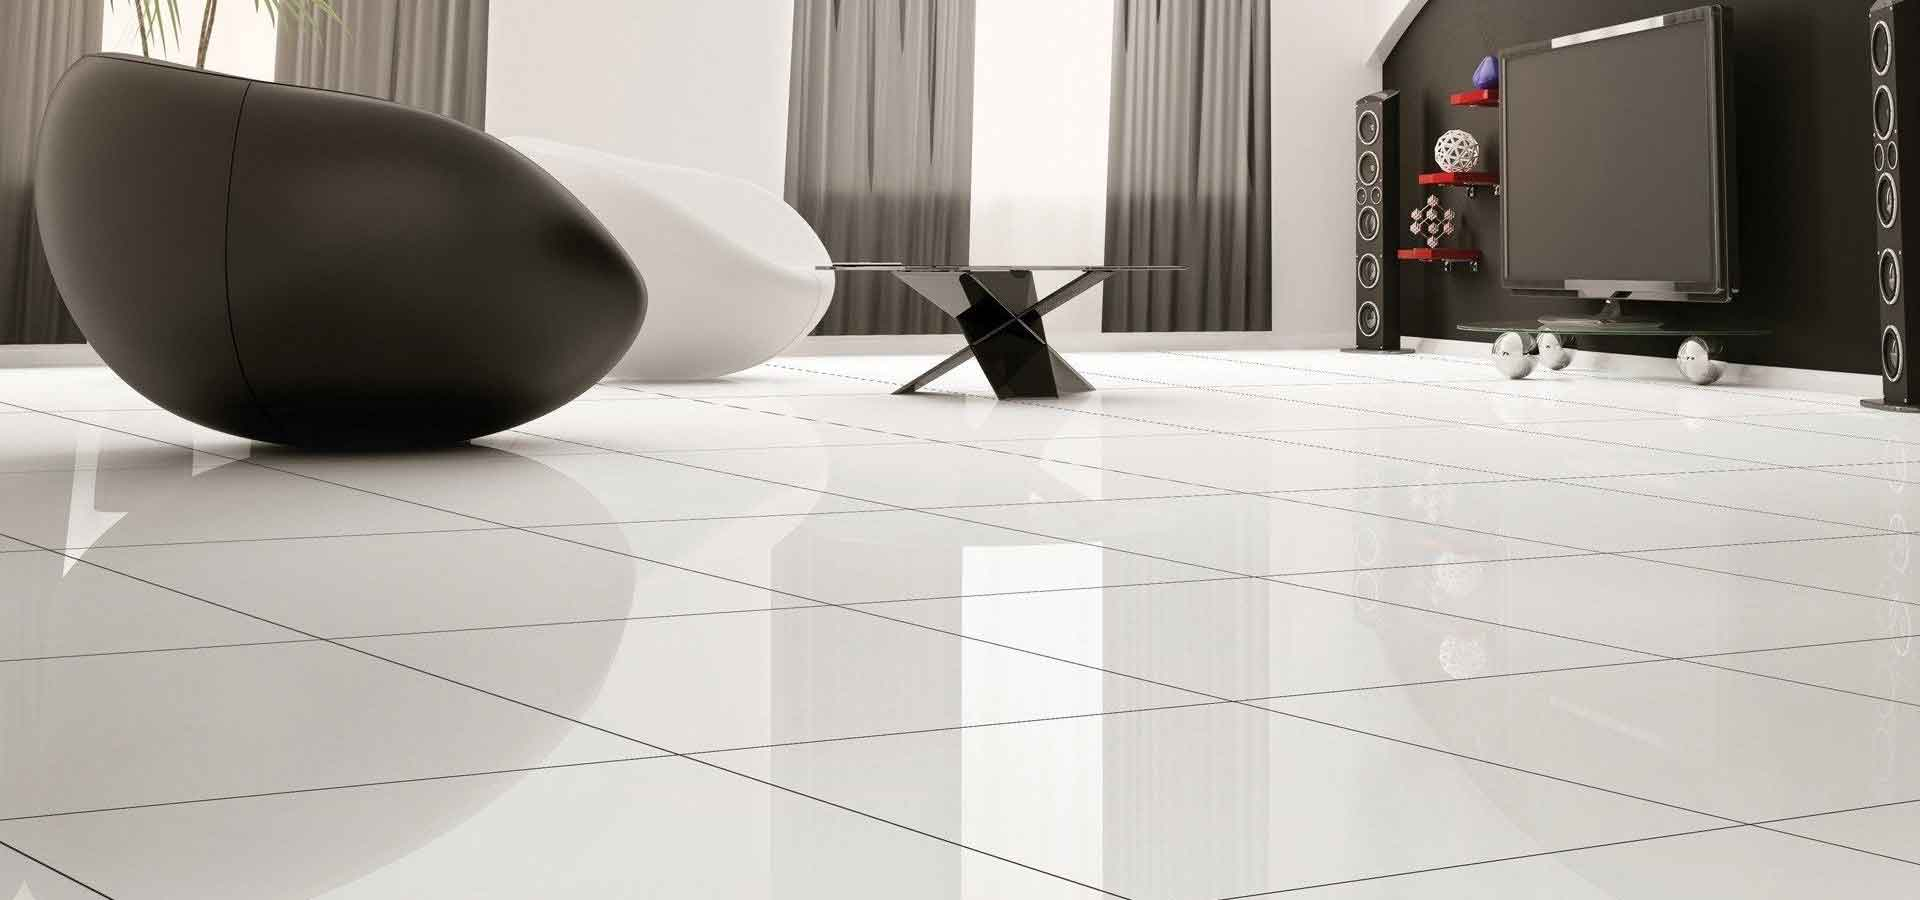 High Gloss Tile